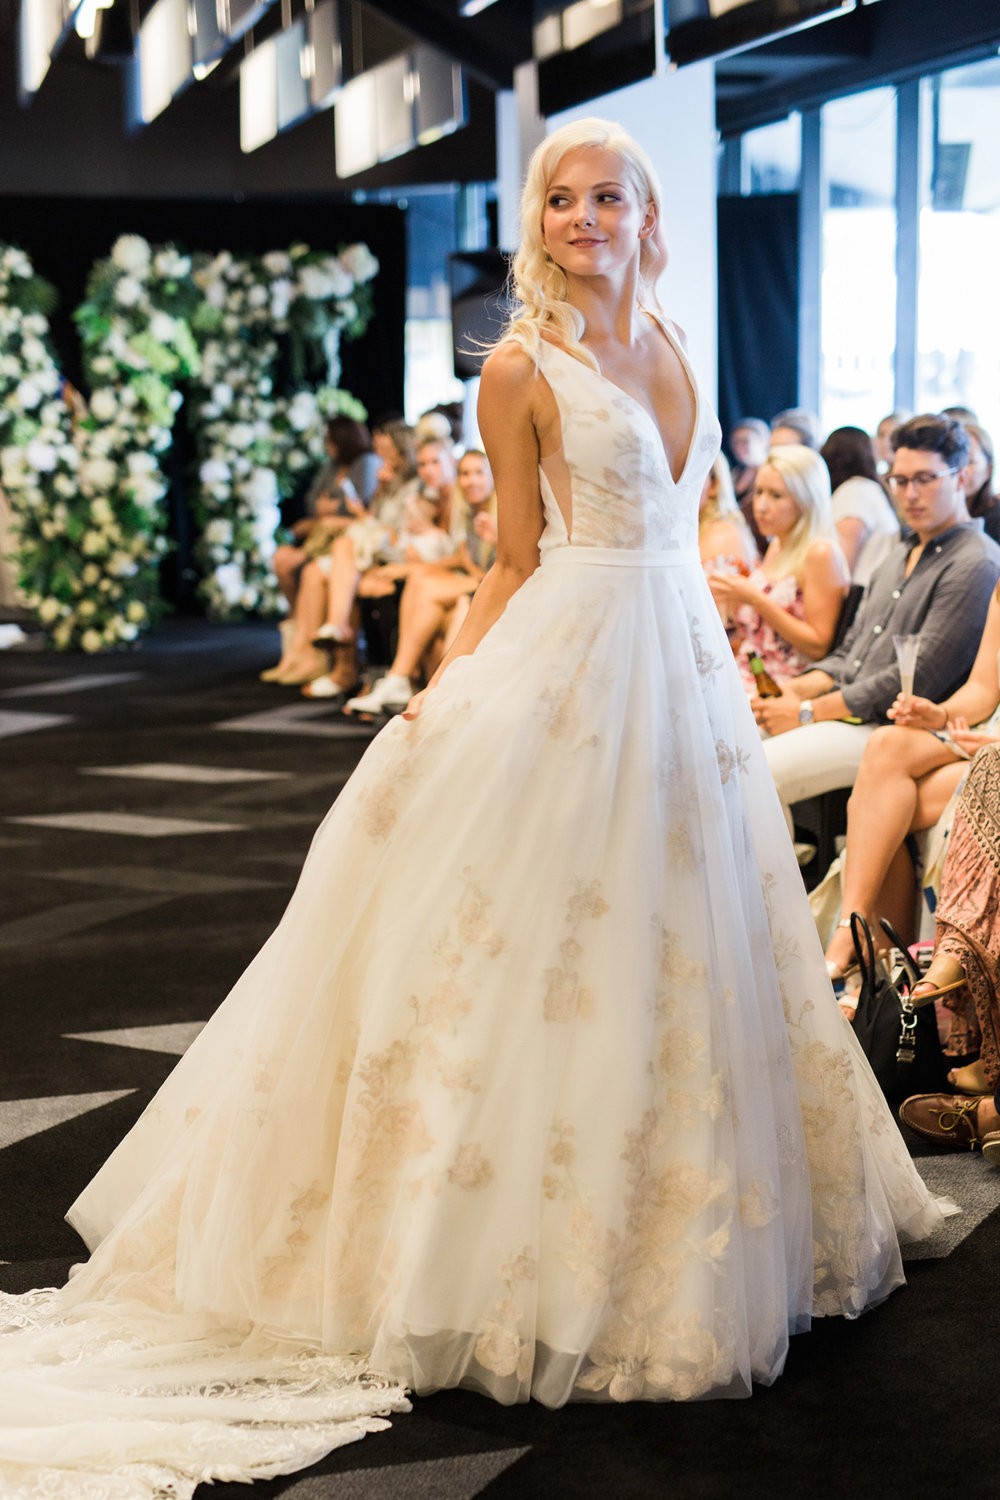 Love-Wedding-Festival-Sydney-Wedding-Gown-Jean-Fox-Bridal-21.jpg